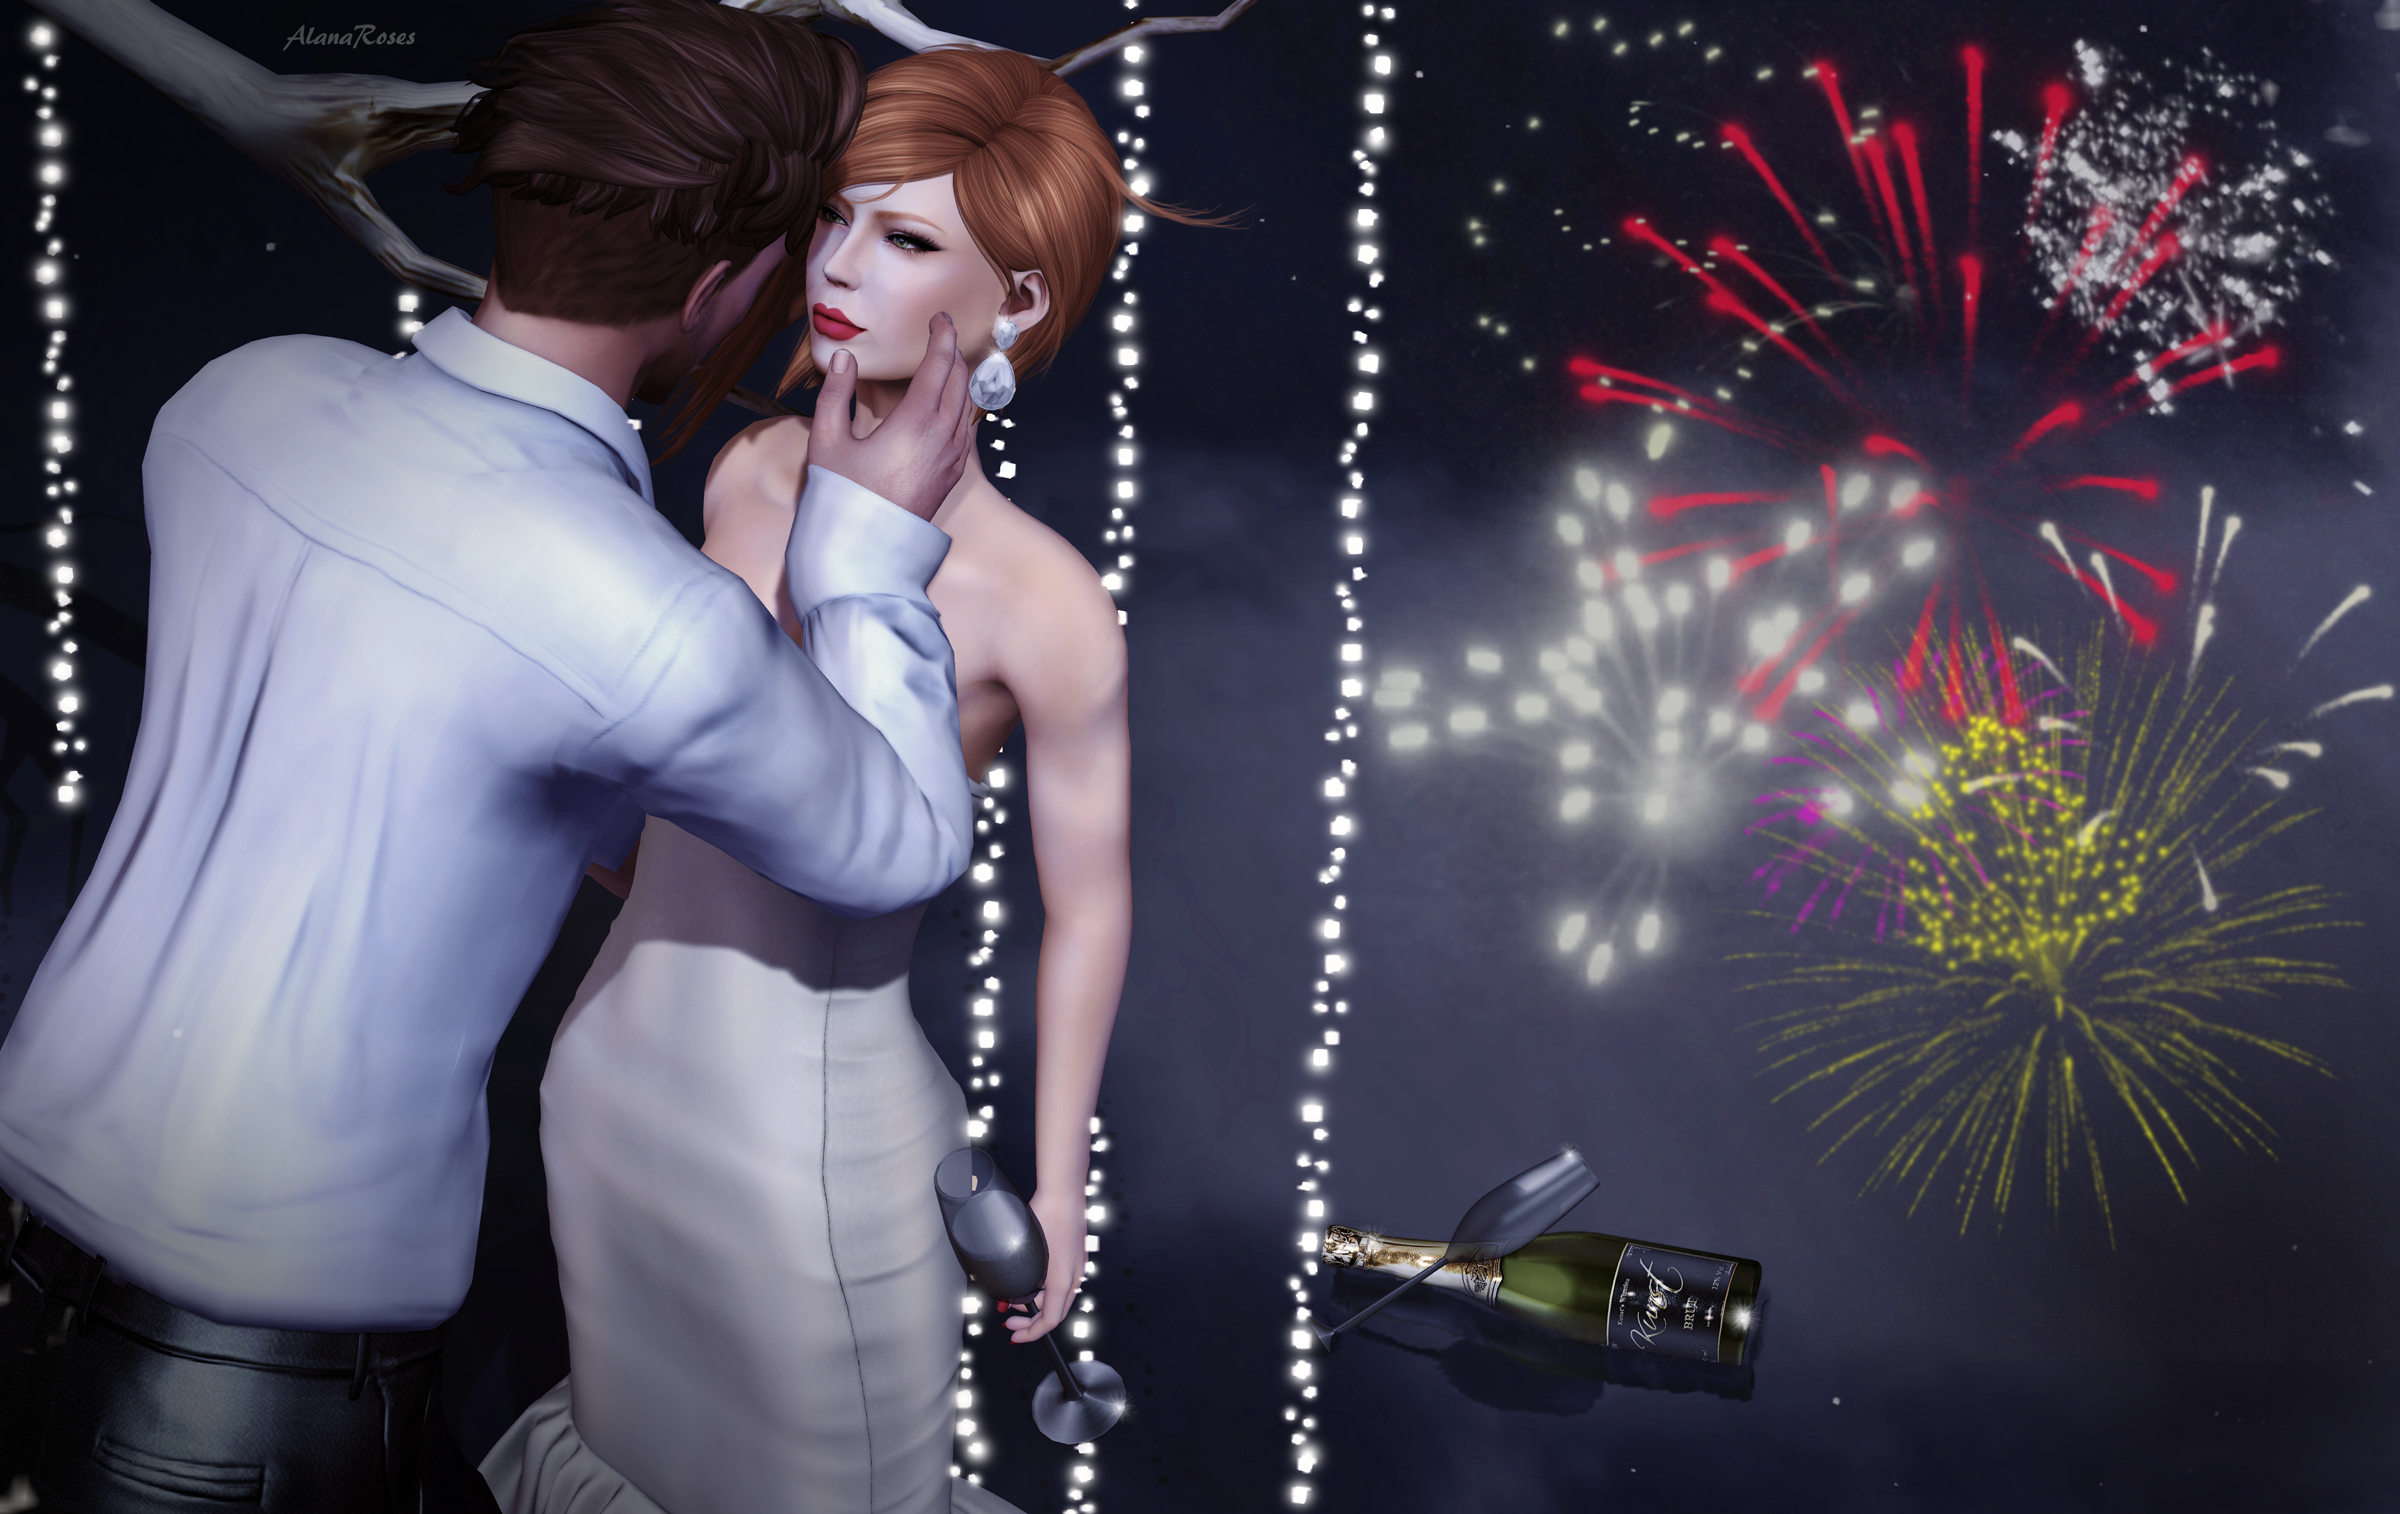 ♥ Happy New Year! ♥